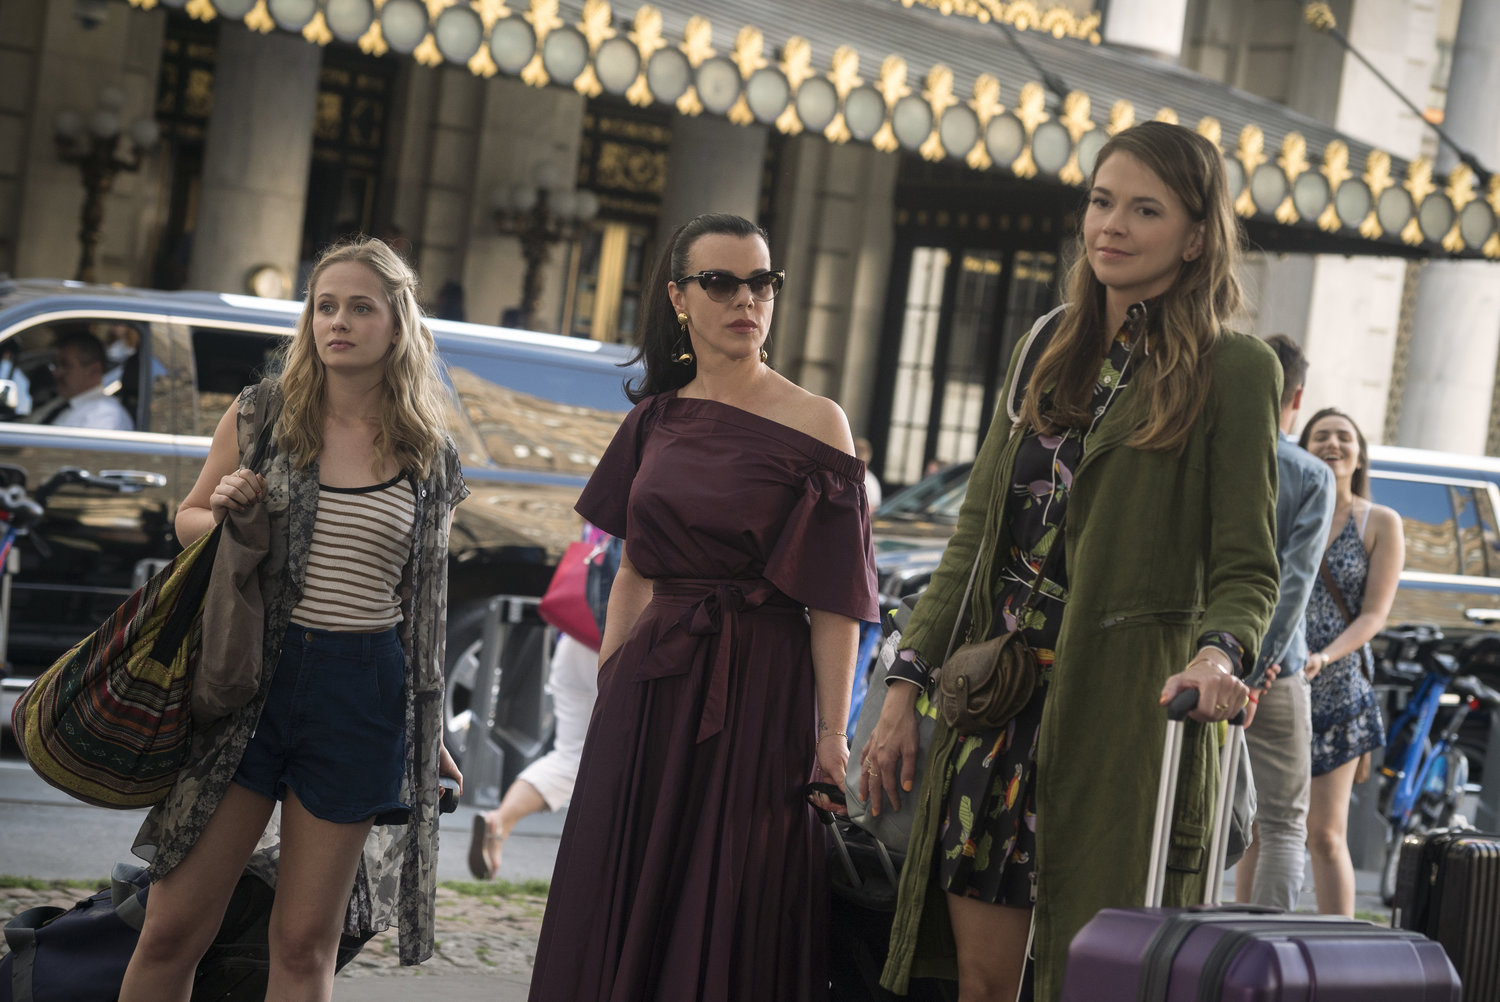 Sutton Foster and Debi Mazar on Younger